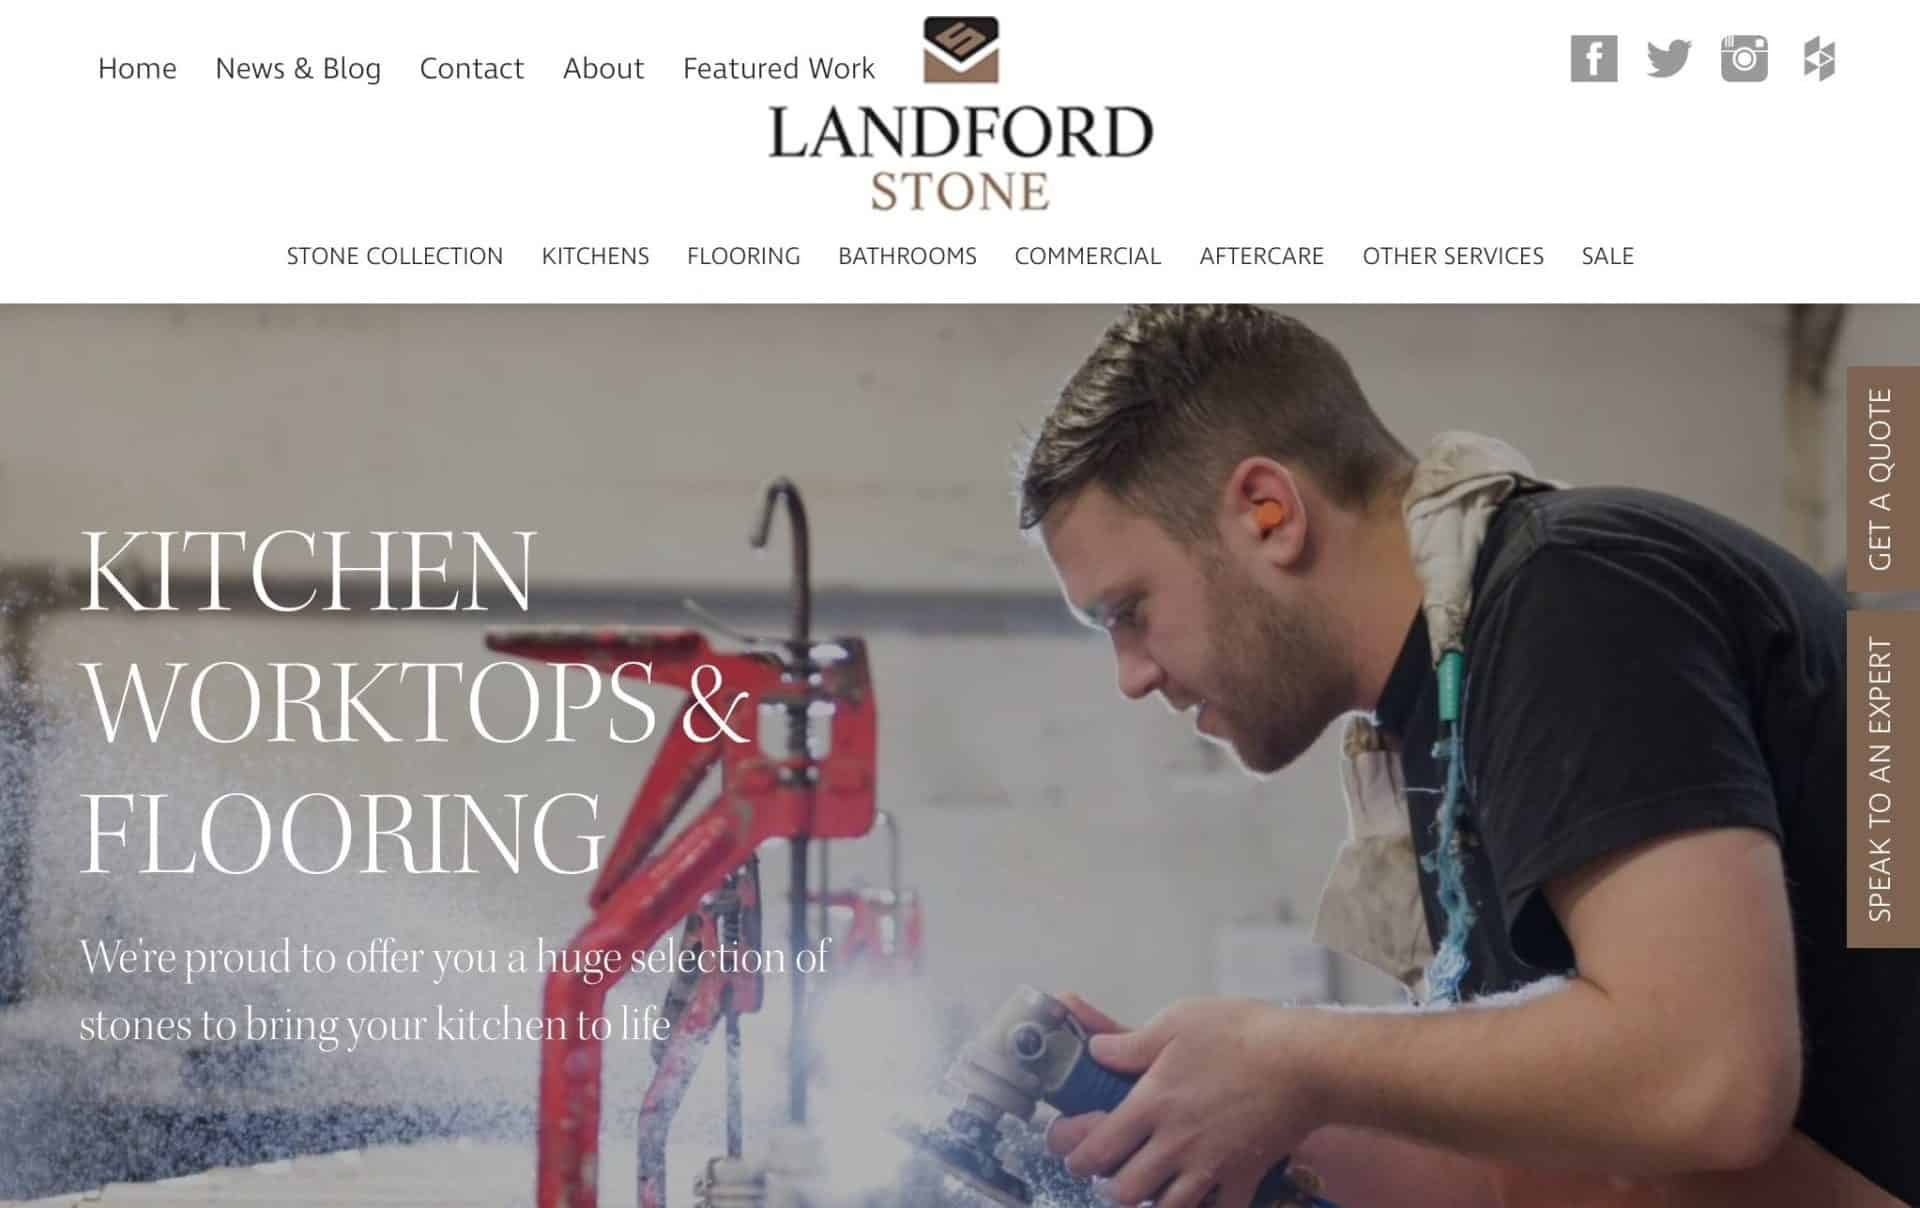 homepage website design for landford stone